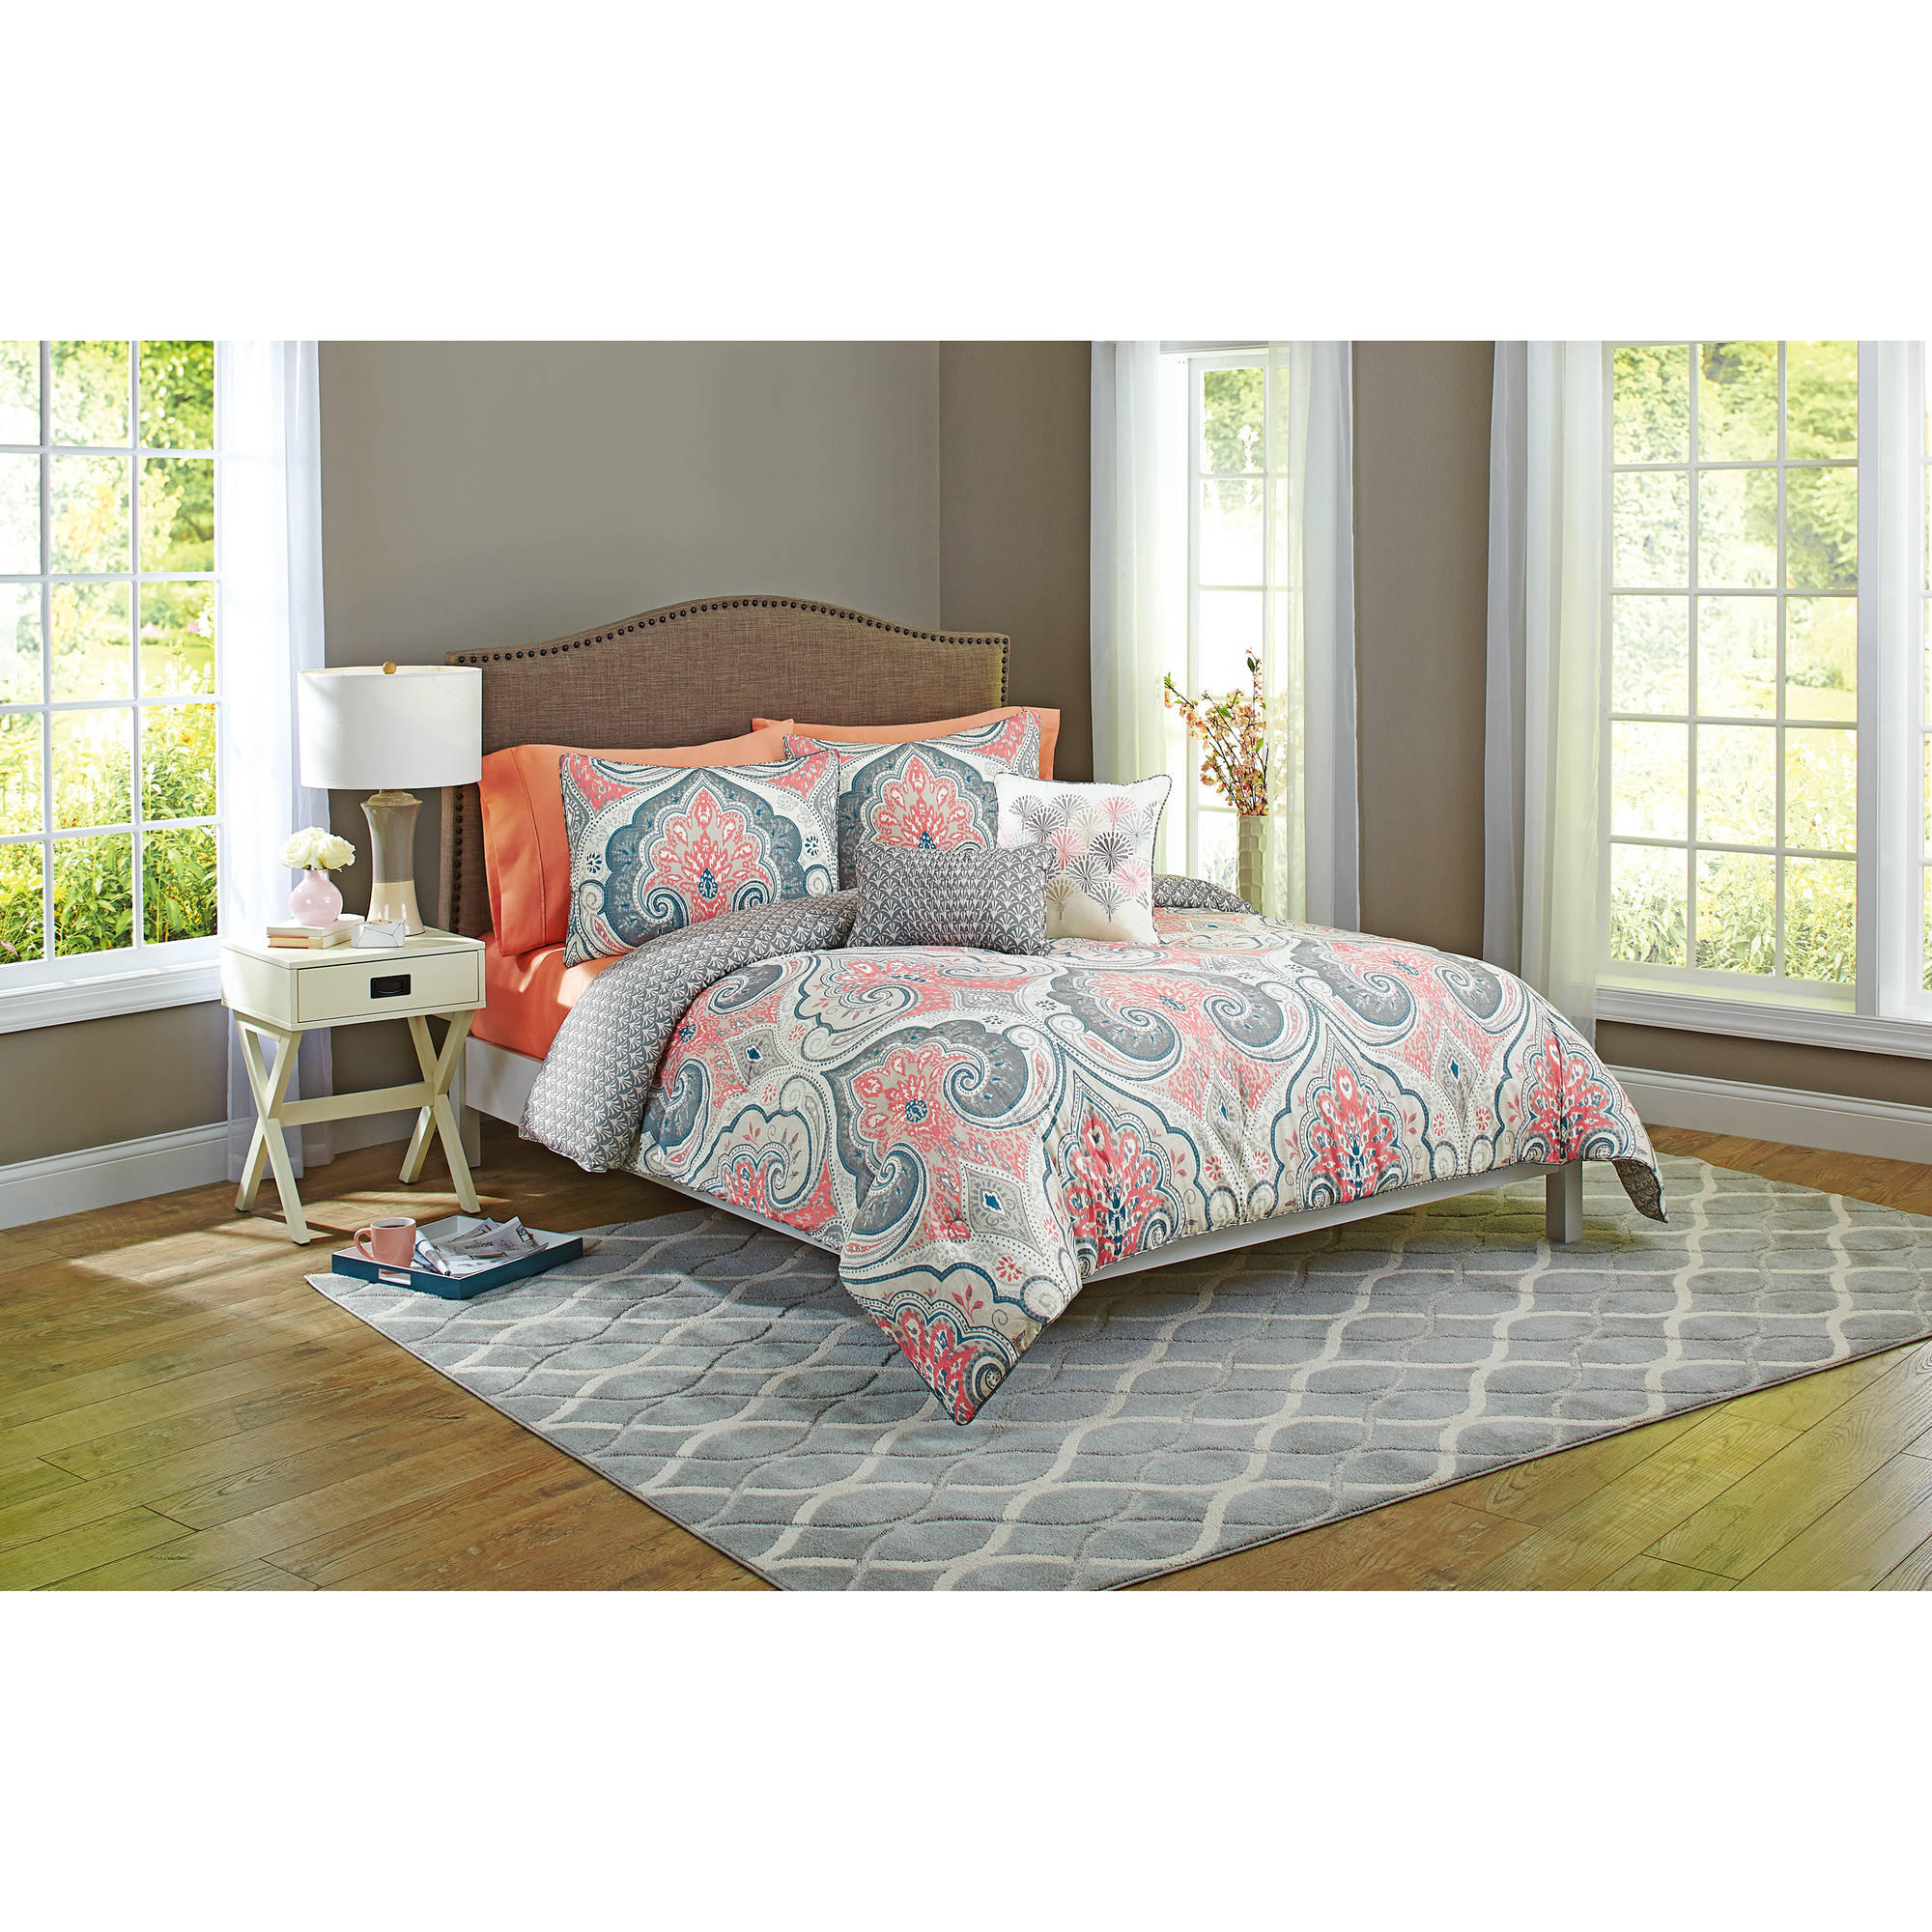 Better Homes and Gardens Grey Medallion 5-Piece Bedding Comforter Set